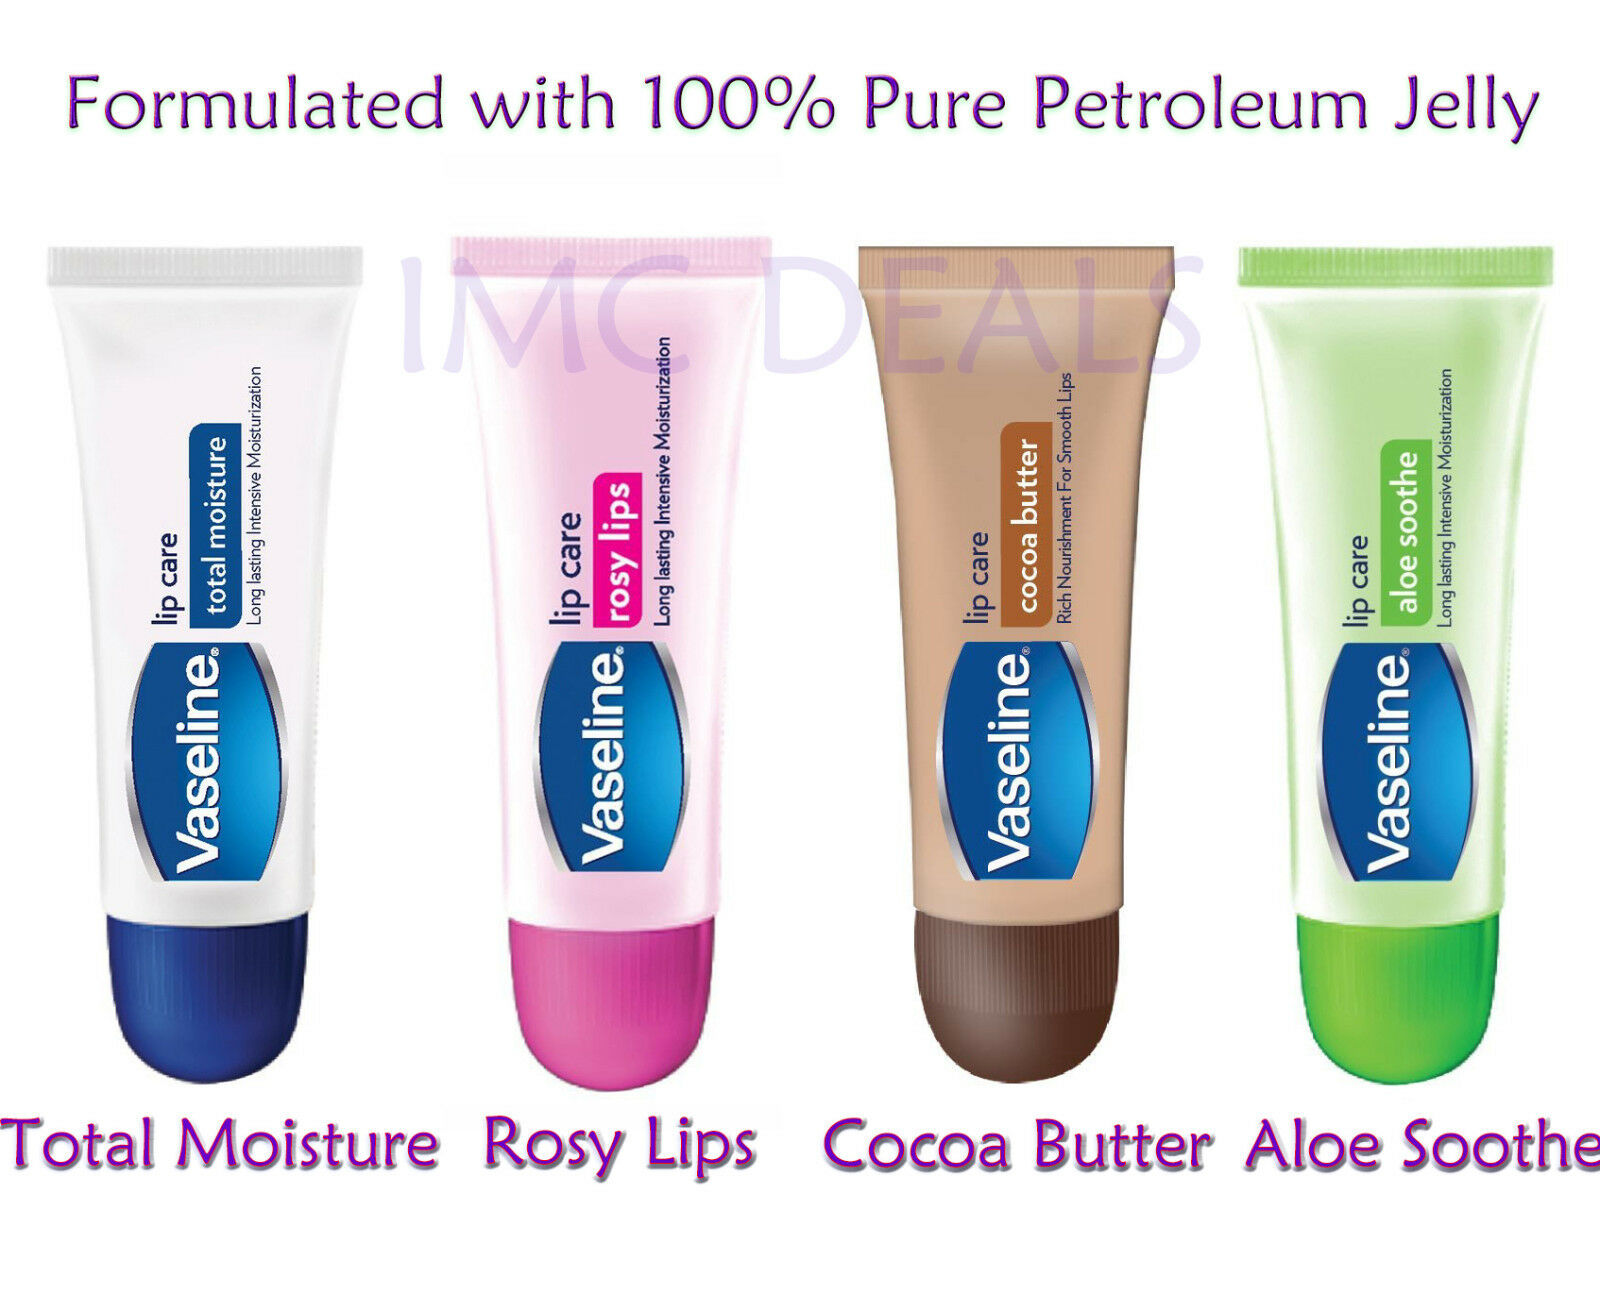 Vaseline Intensive Moisturization 100 Pure Petroleum Jelly Lip Care Therapy Rosy 20g Original Balm 1 Of 1free Shipping